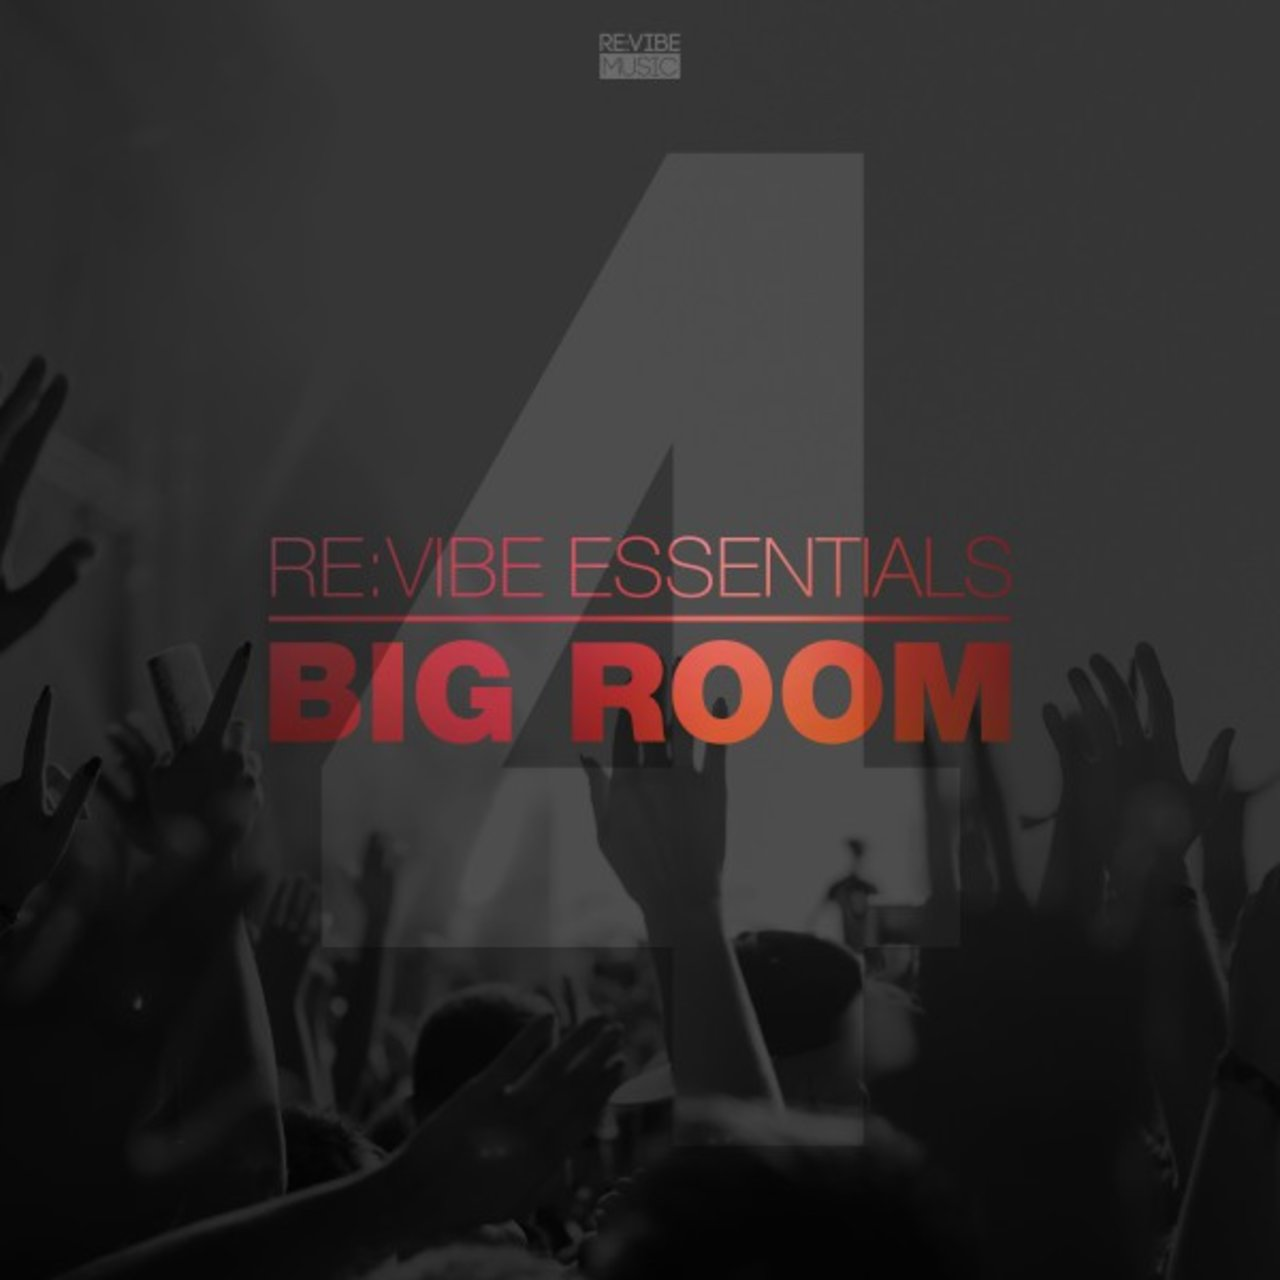 Re:Vibe Essentials - Big Room, Vol. 4